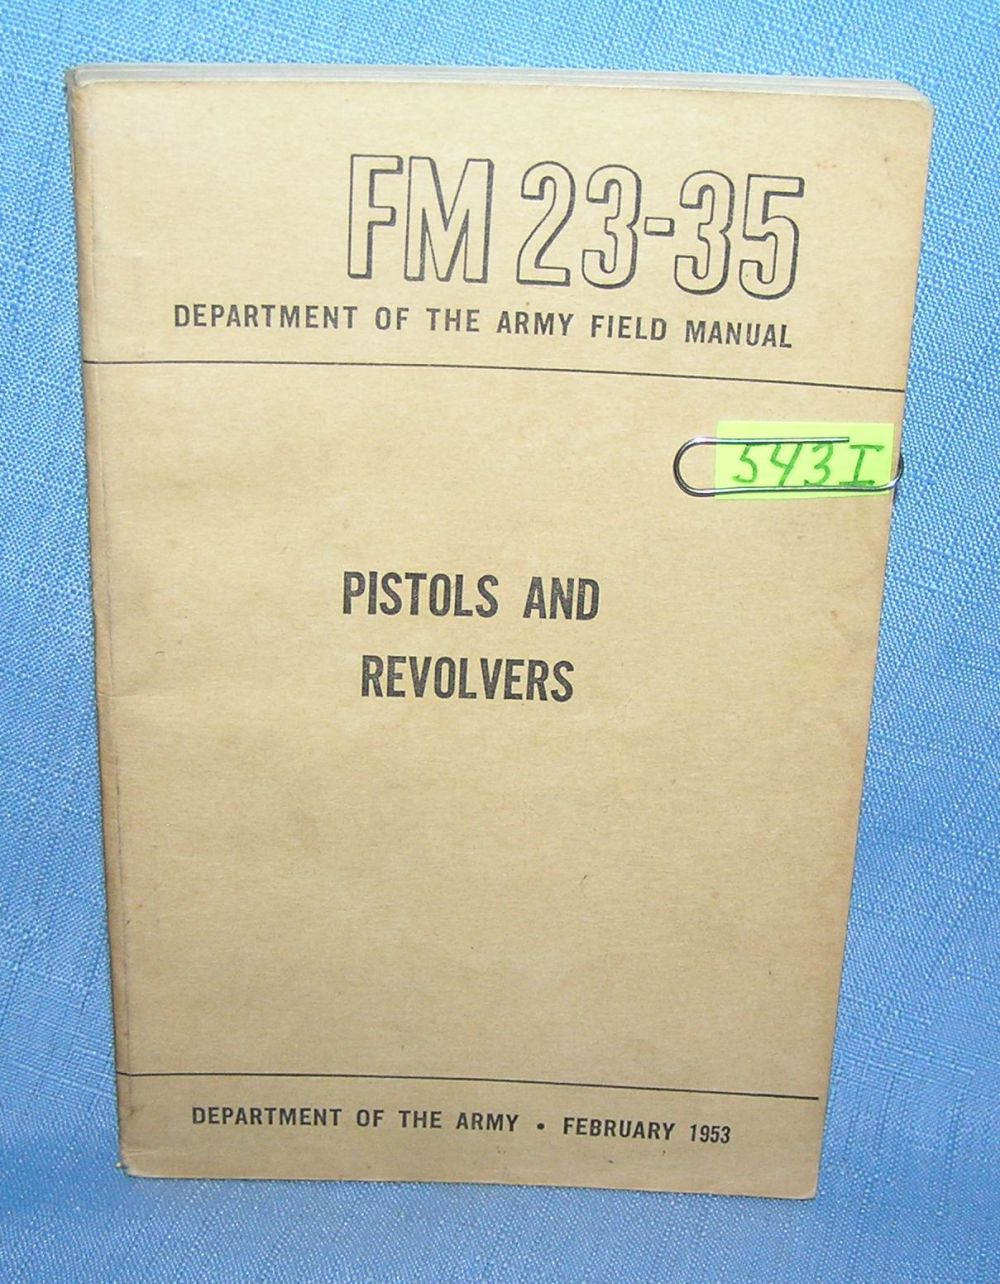 PISTOLS AND REVOLVERS DEPT.OF THE ARMY FIELD MANUEL